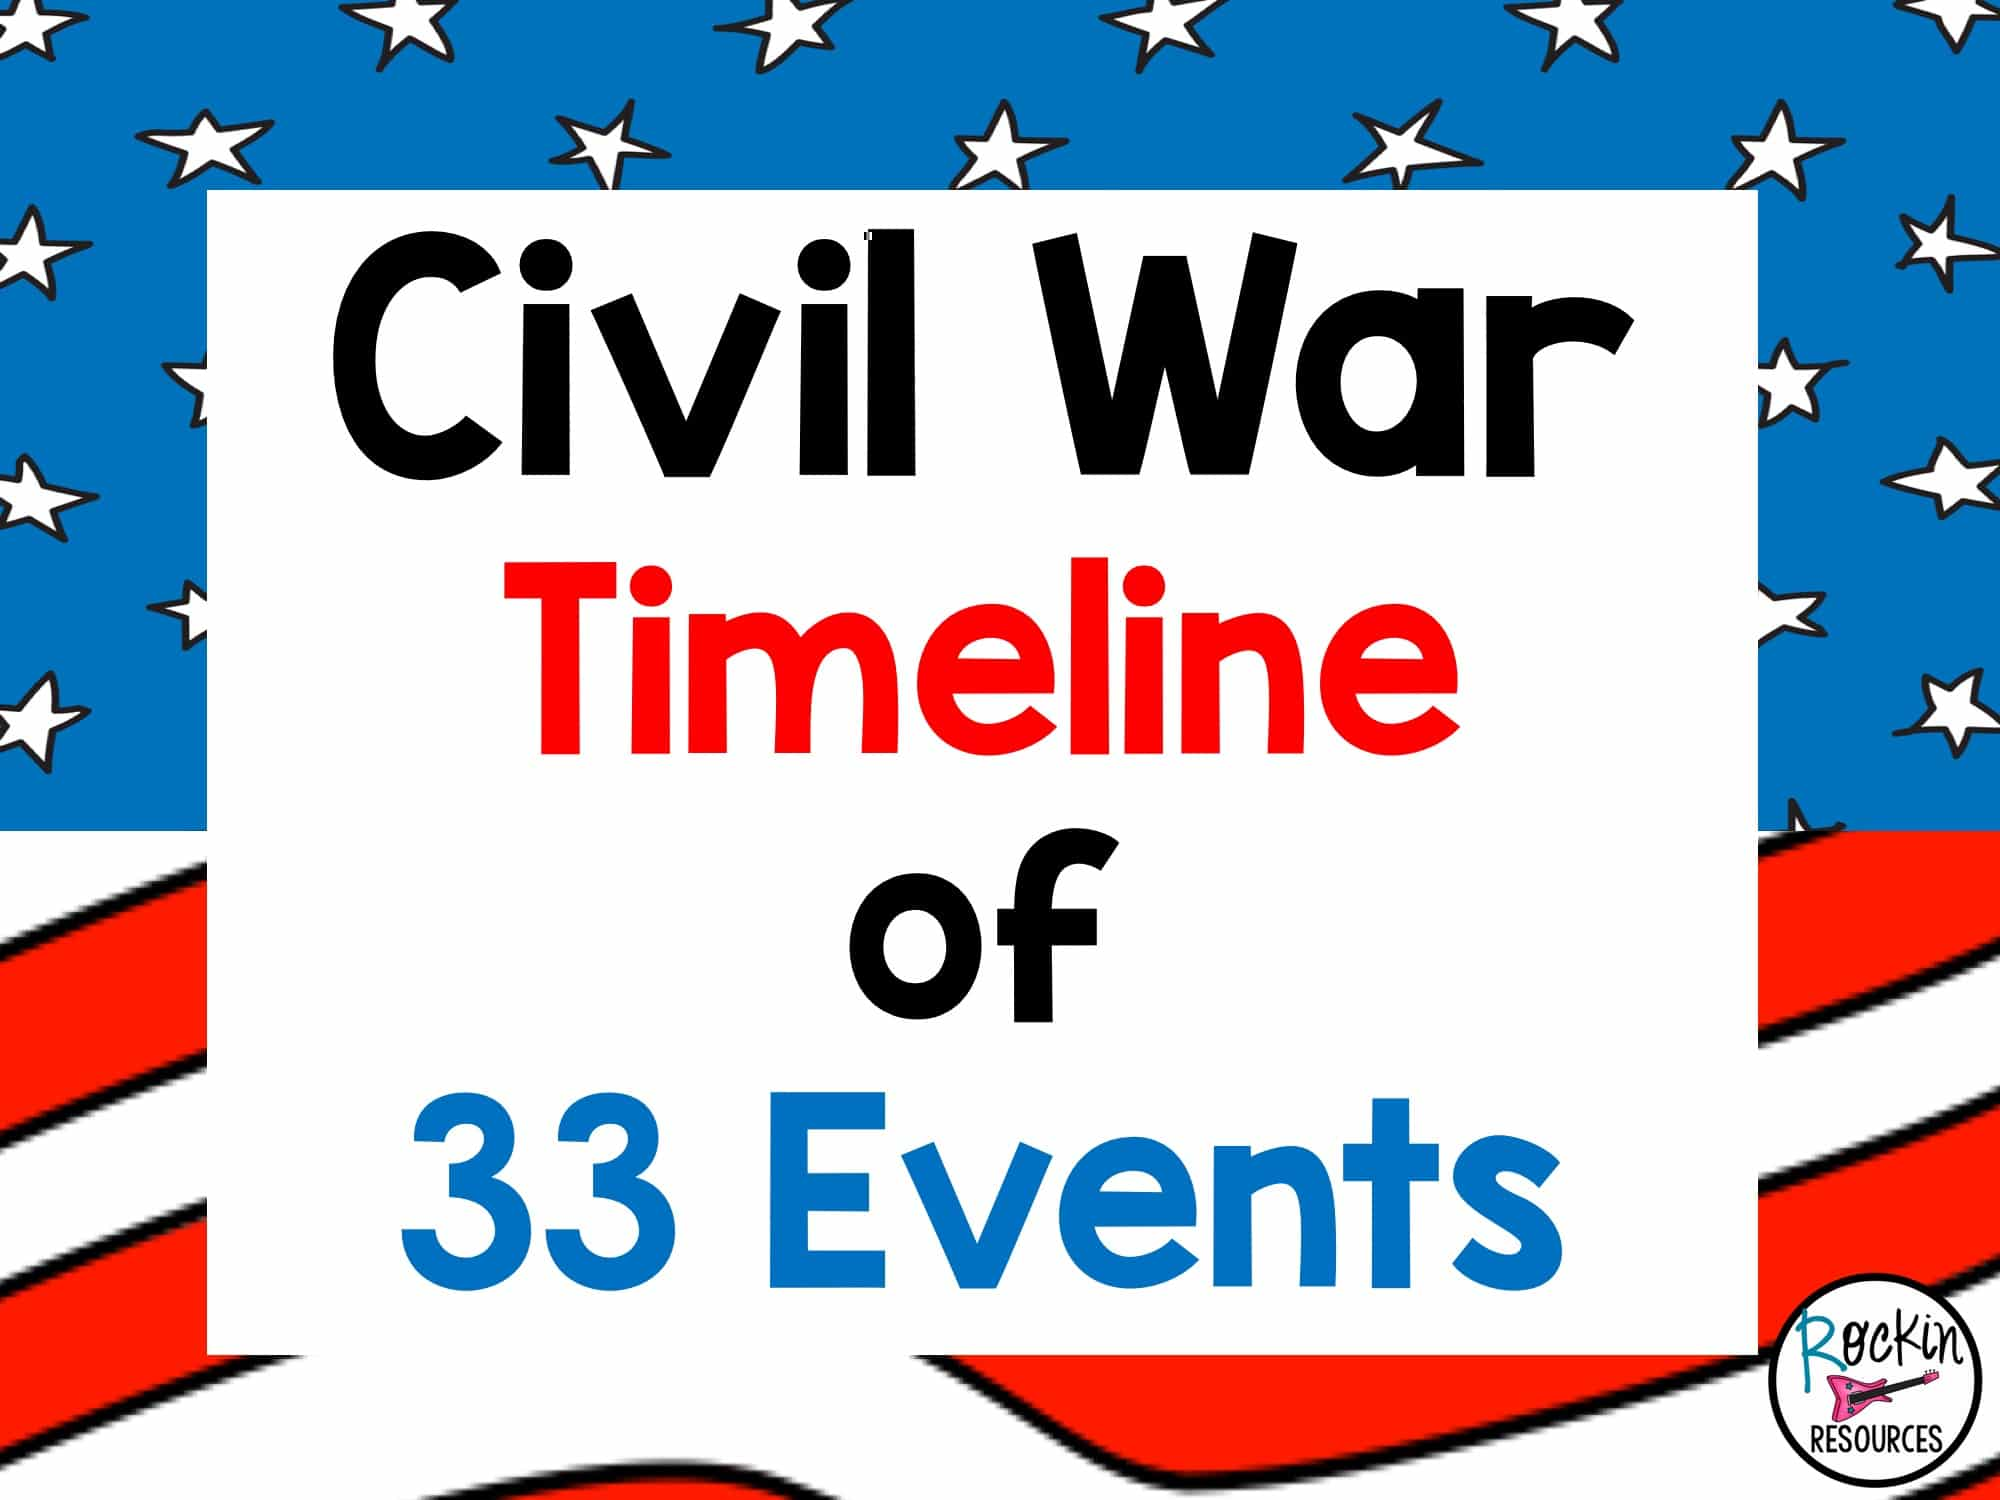 medium resolution of Civil War Timeline   Rockin Resources